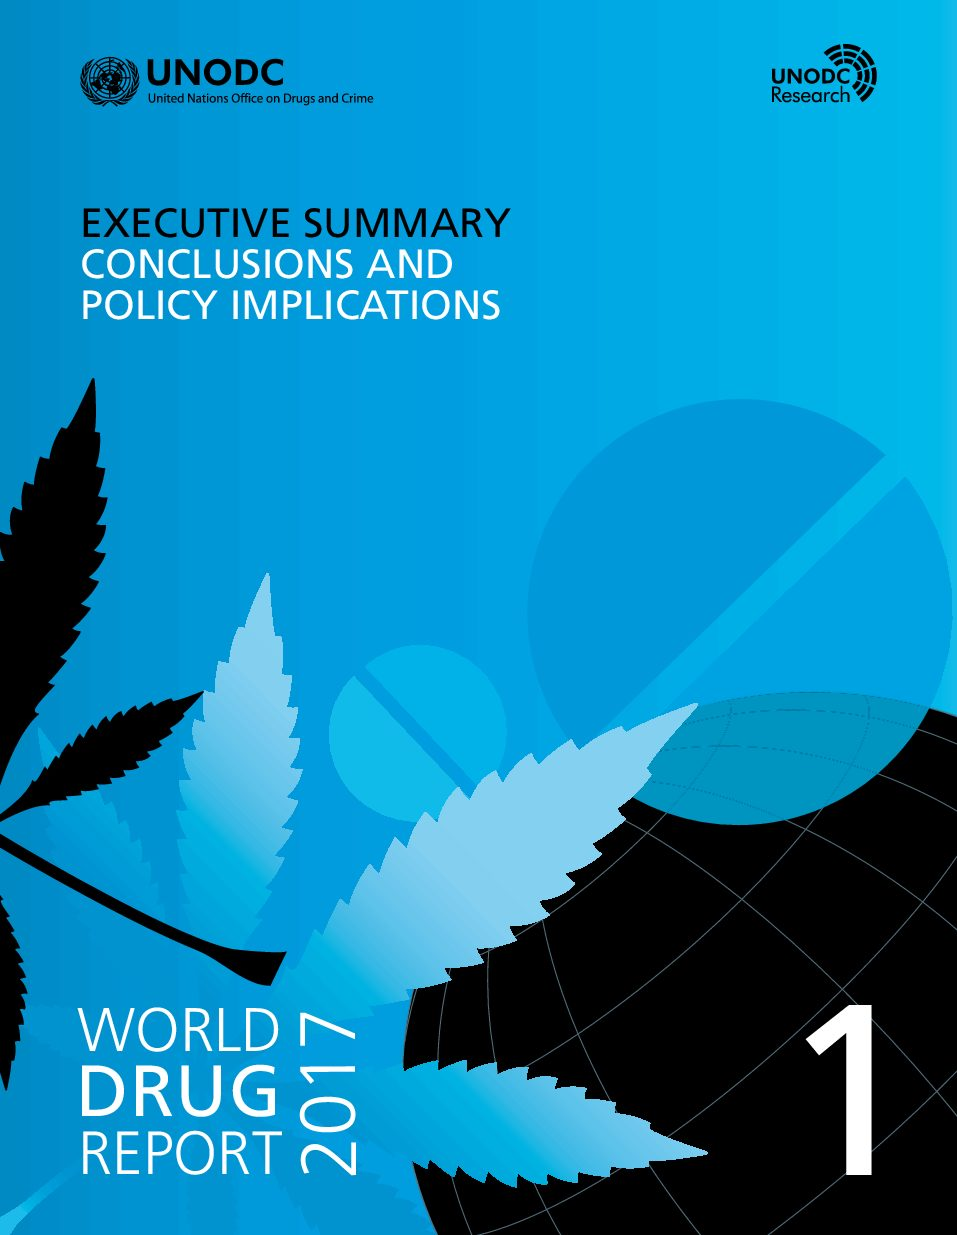 World Drug Report 2017. Part 1. EXECUTIVE SUMMARY CONCLUSIONS AND POLICY IMPLICATIONS